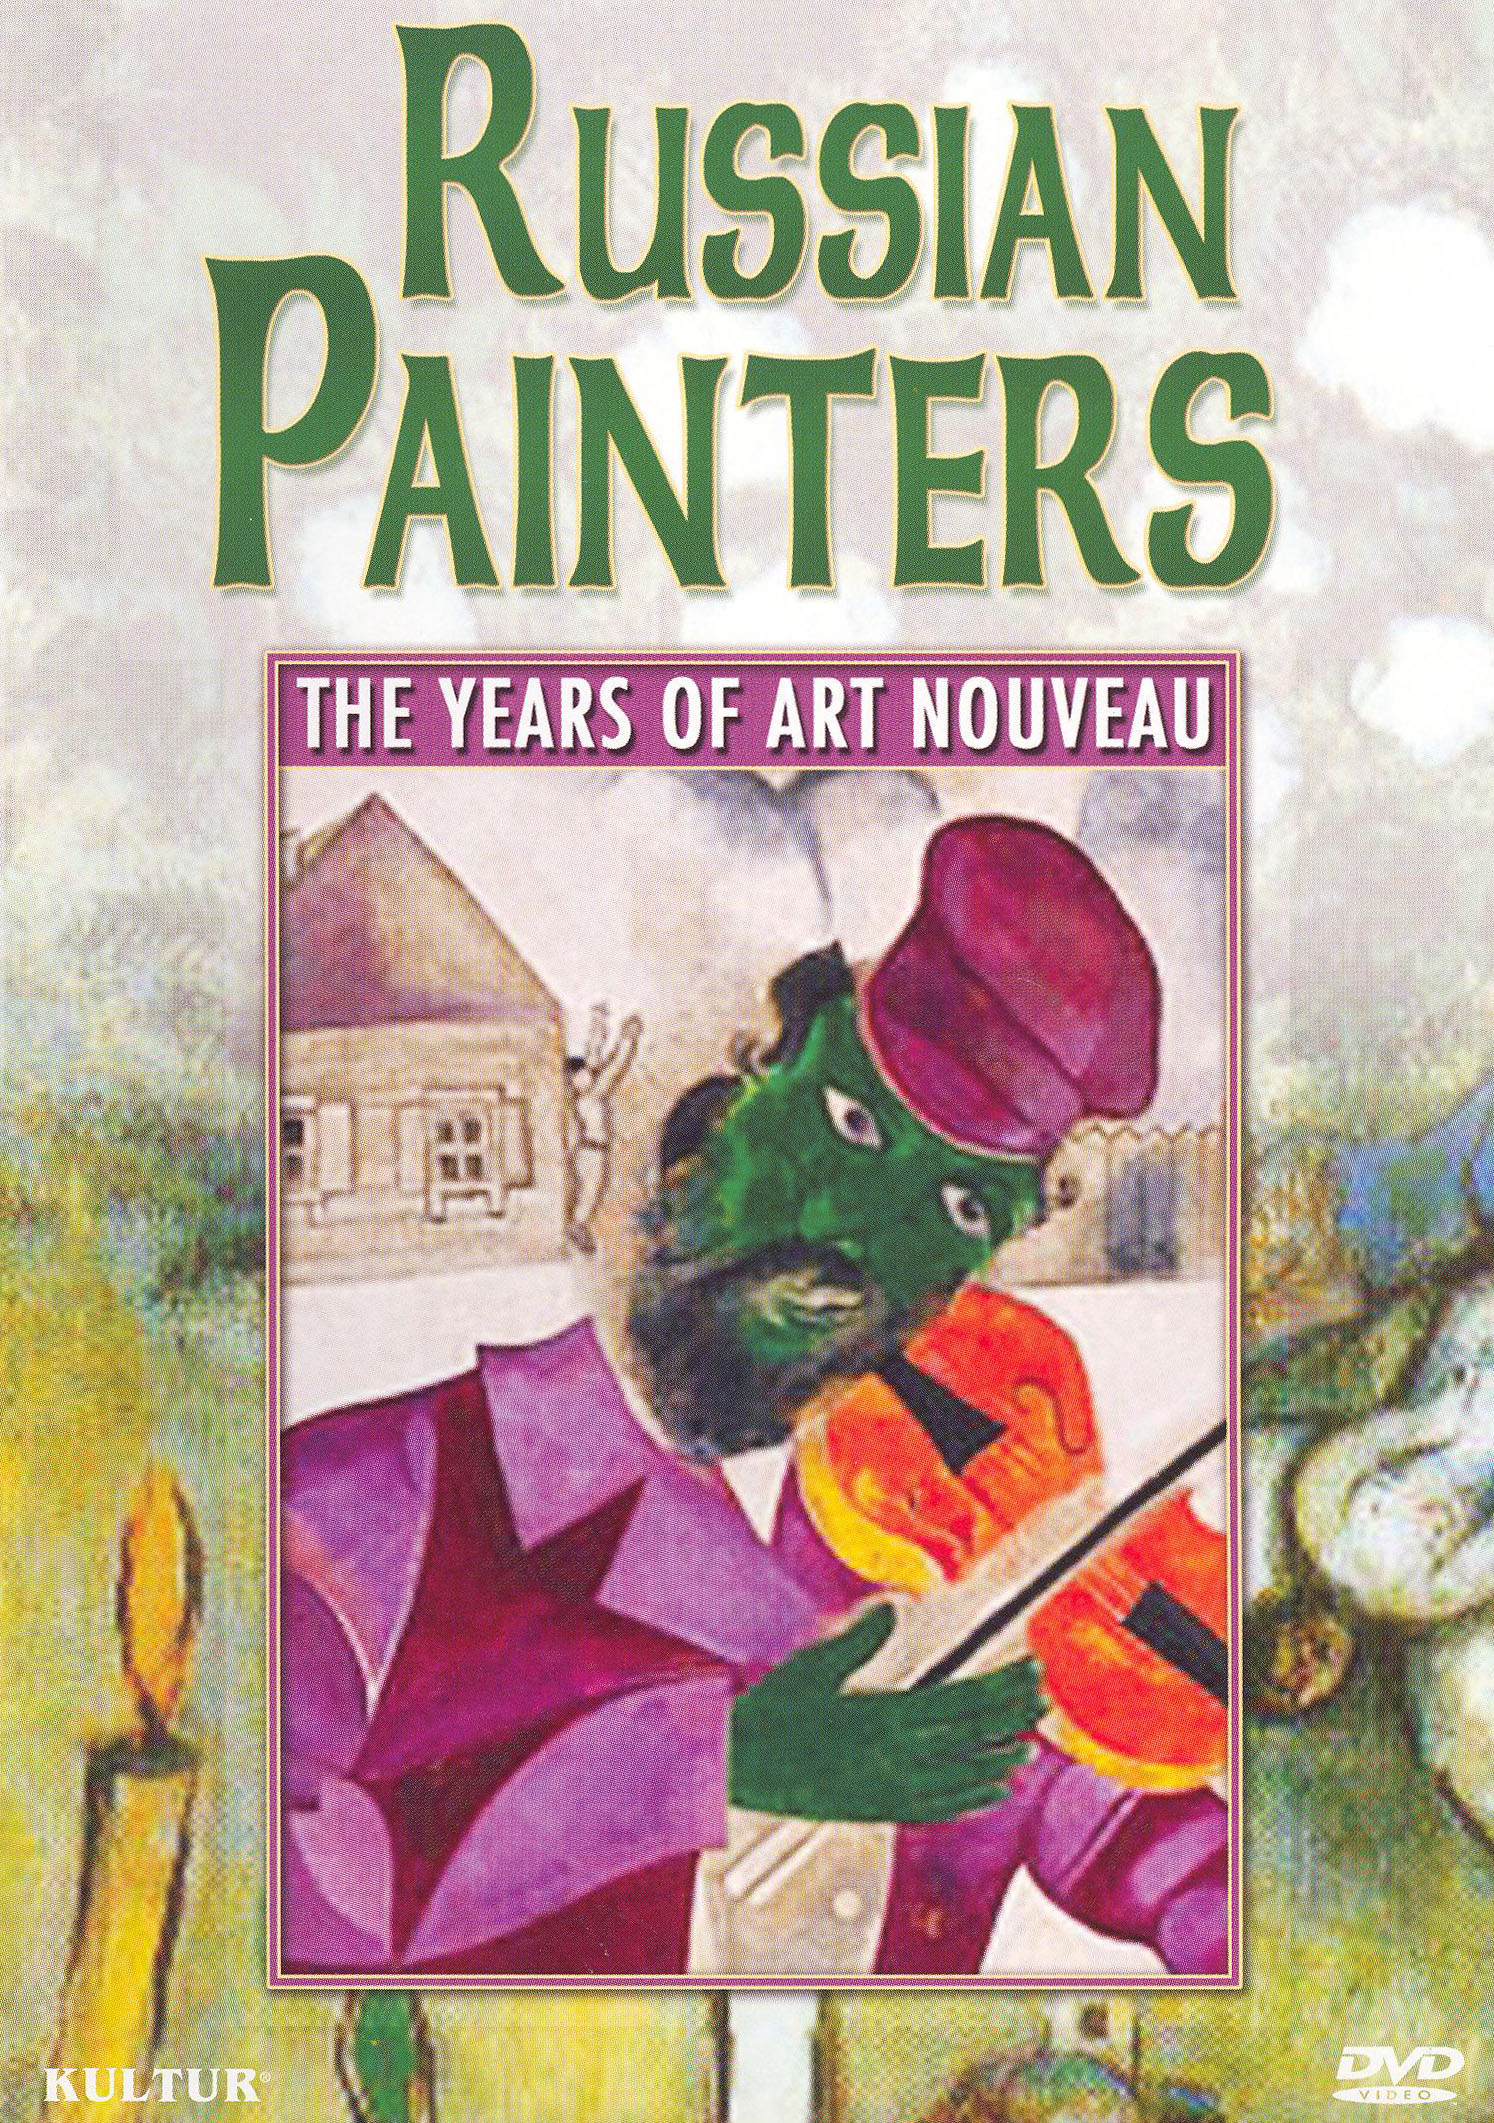 Russian Painters: The Years of Art Nouveau